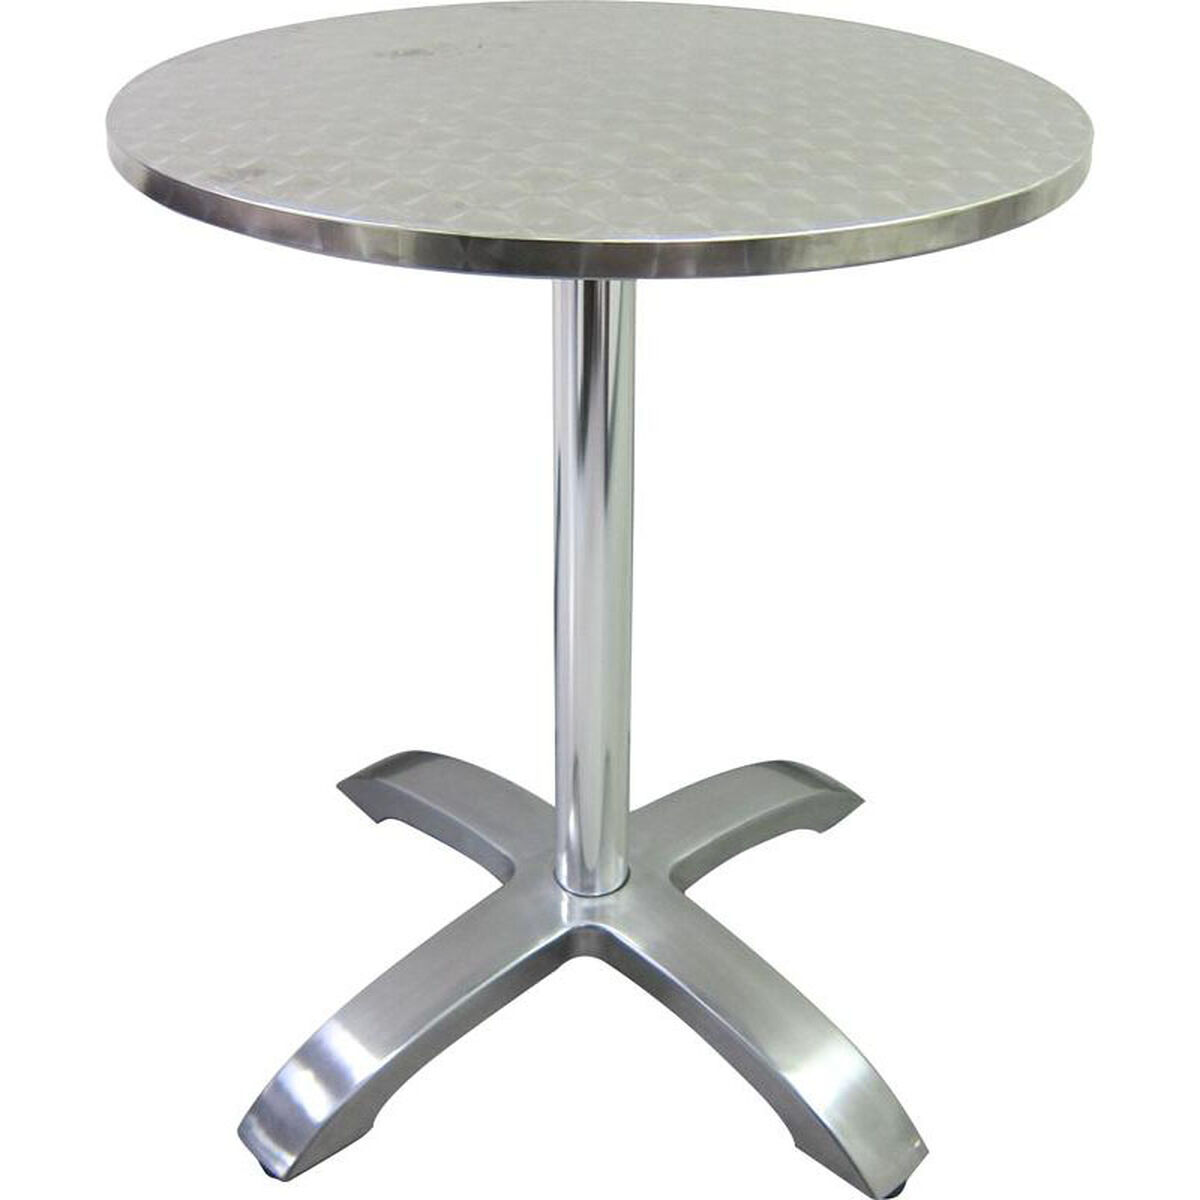 Our Stainless Steel Round Table Top With Aluminum Base Is On Sale Now